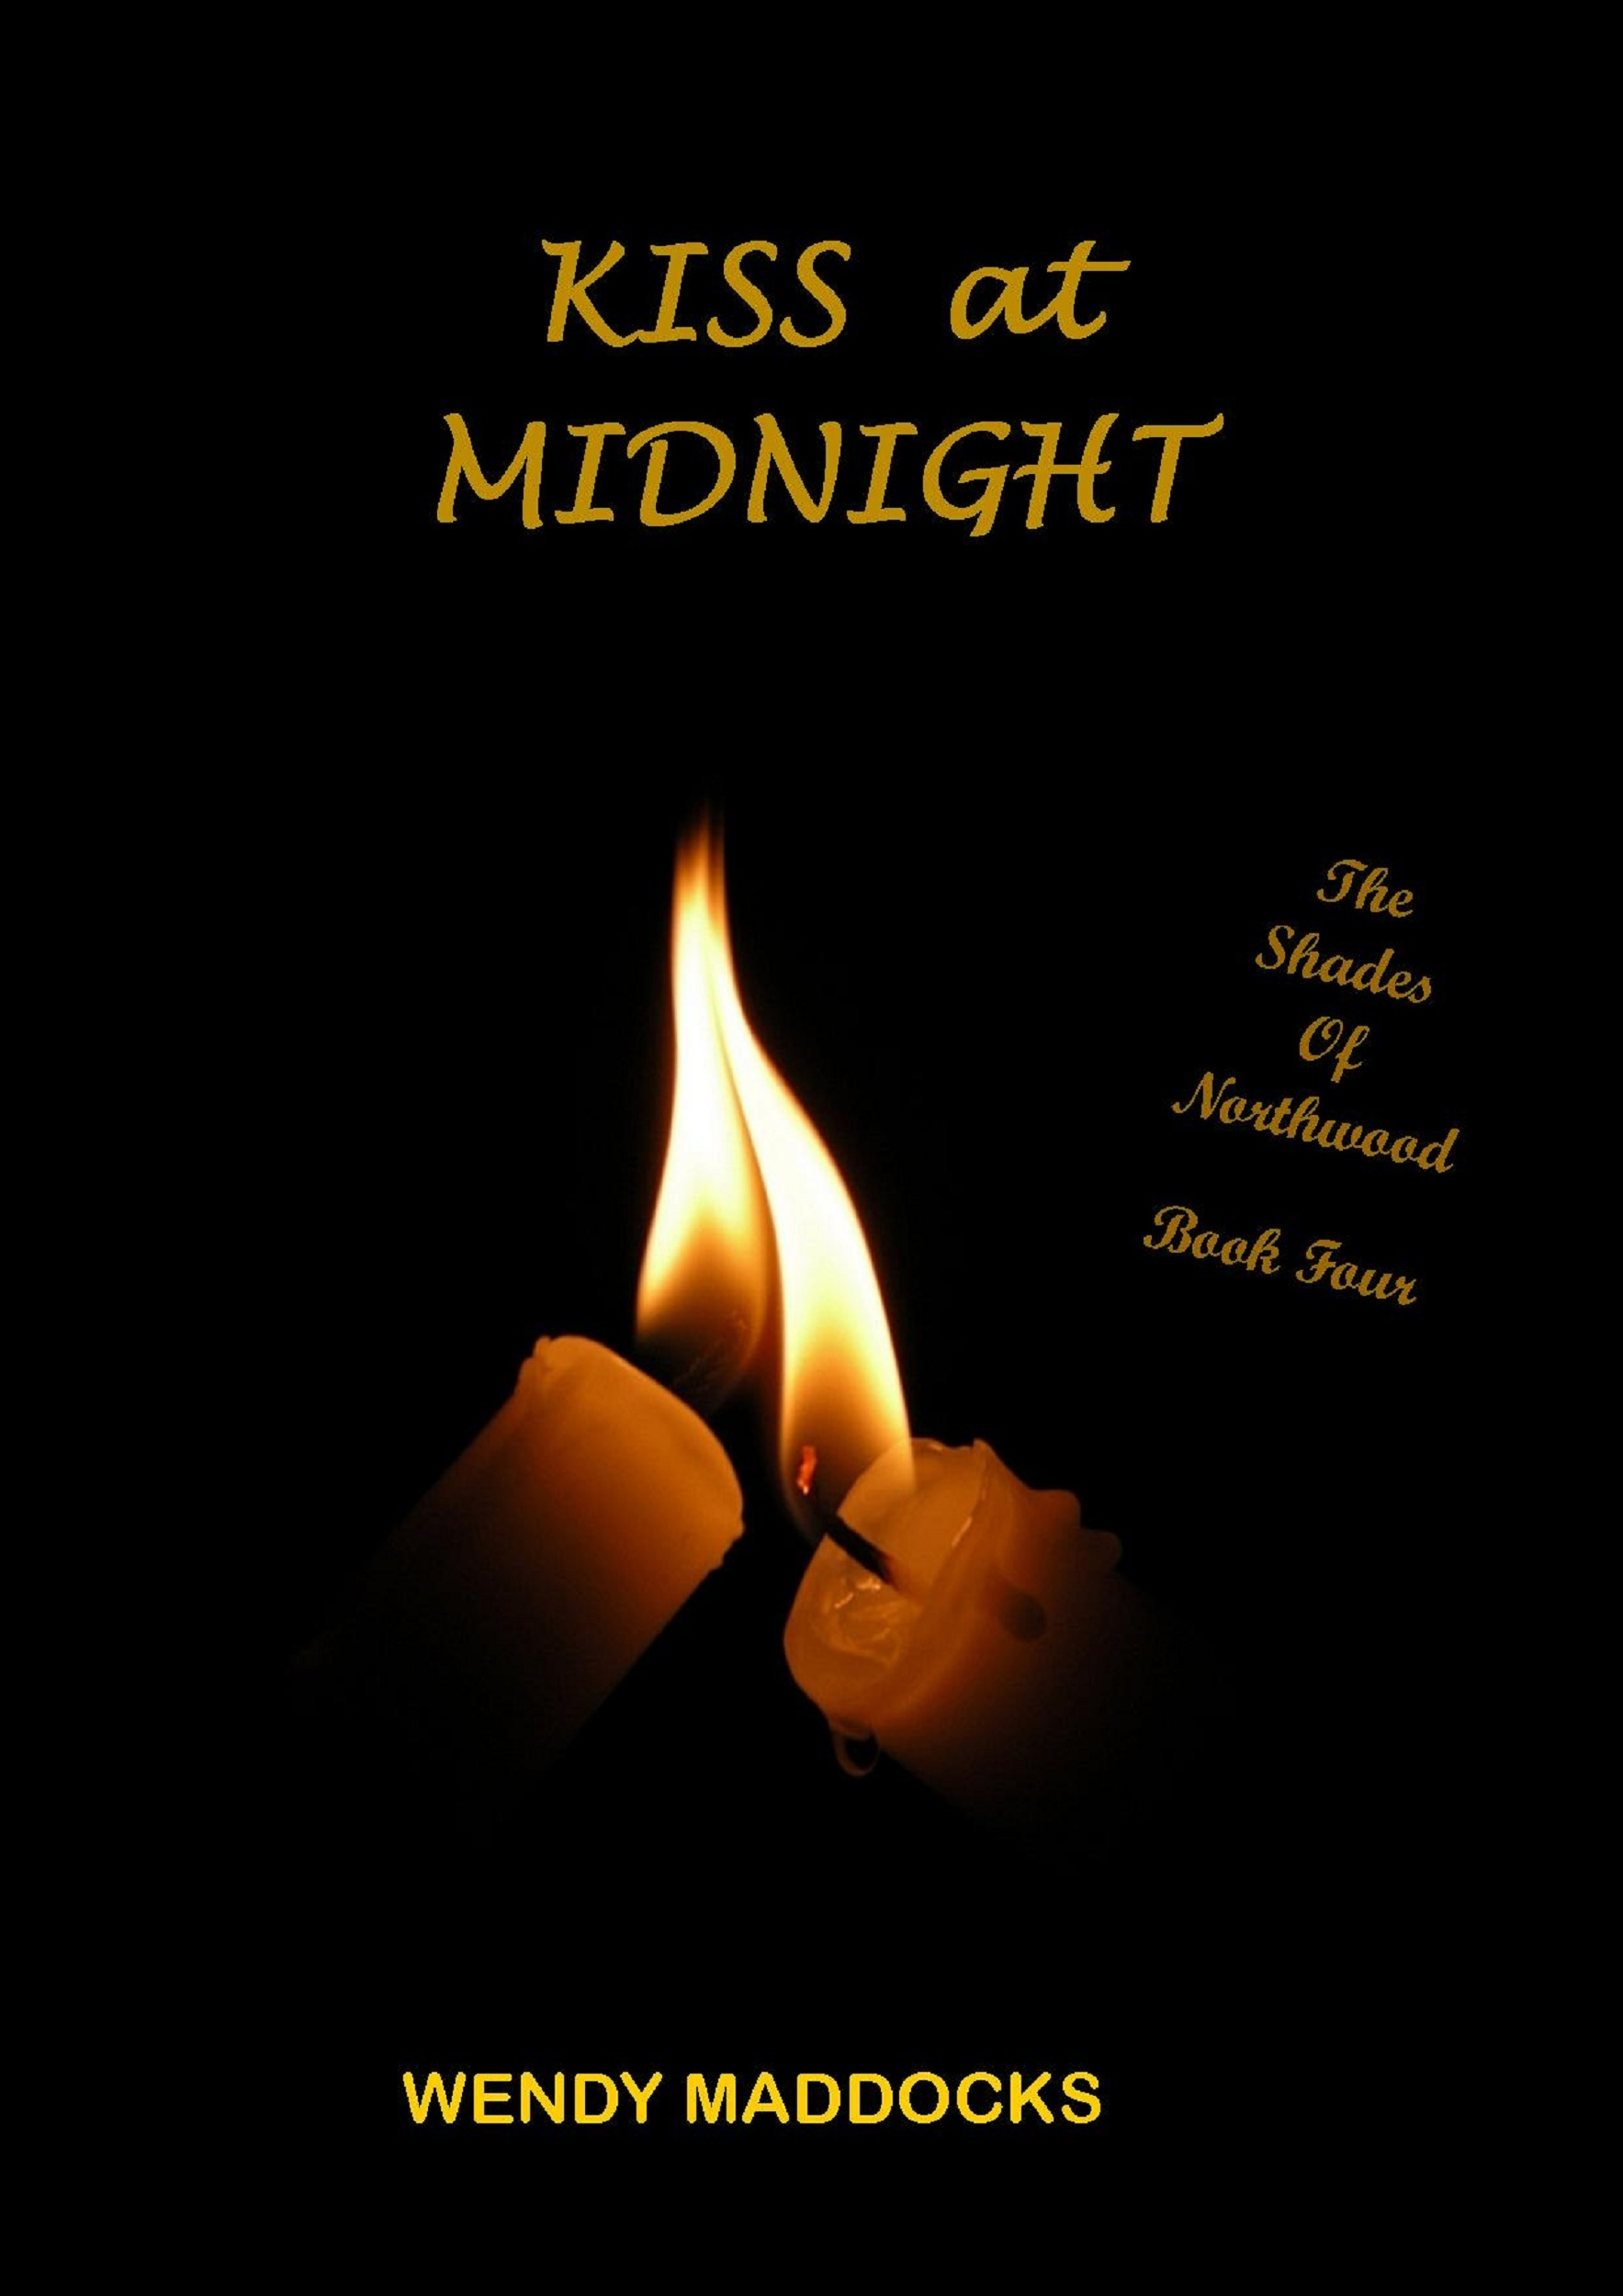 Kiss at Midnight (The Shades of Northwood 4)